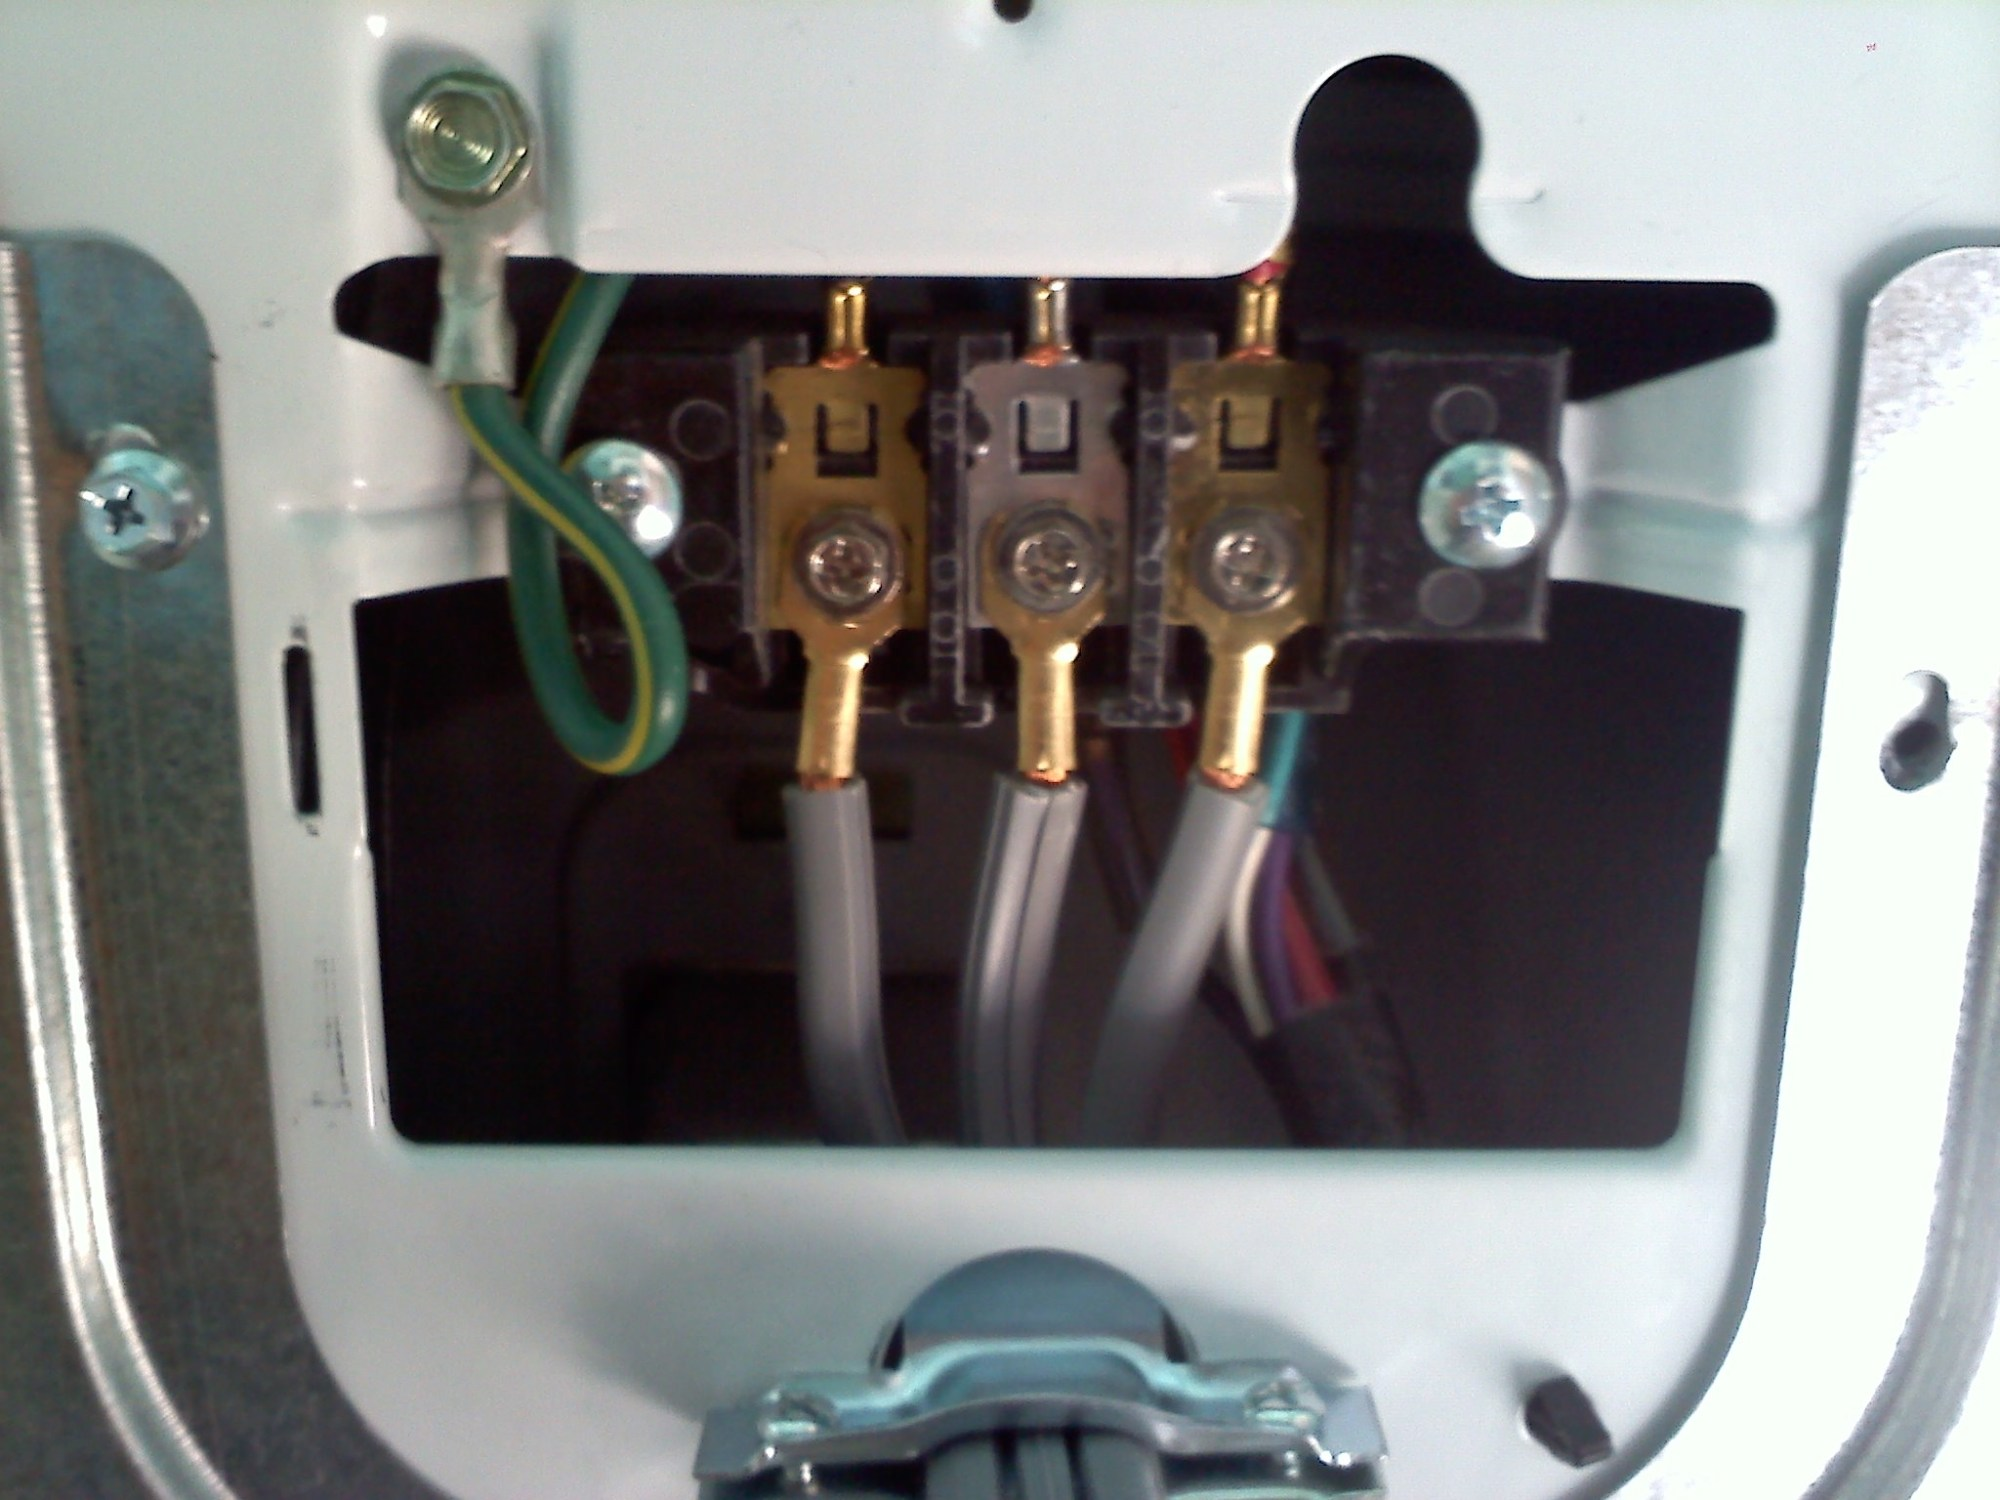 hight resolution of 220 dryer wiring diagram wiring diagram 100 4 wire dryer connection diagram yasminroohi3 prong electrical